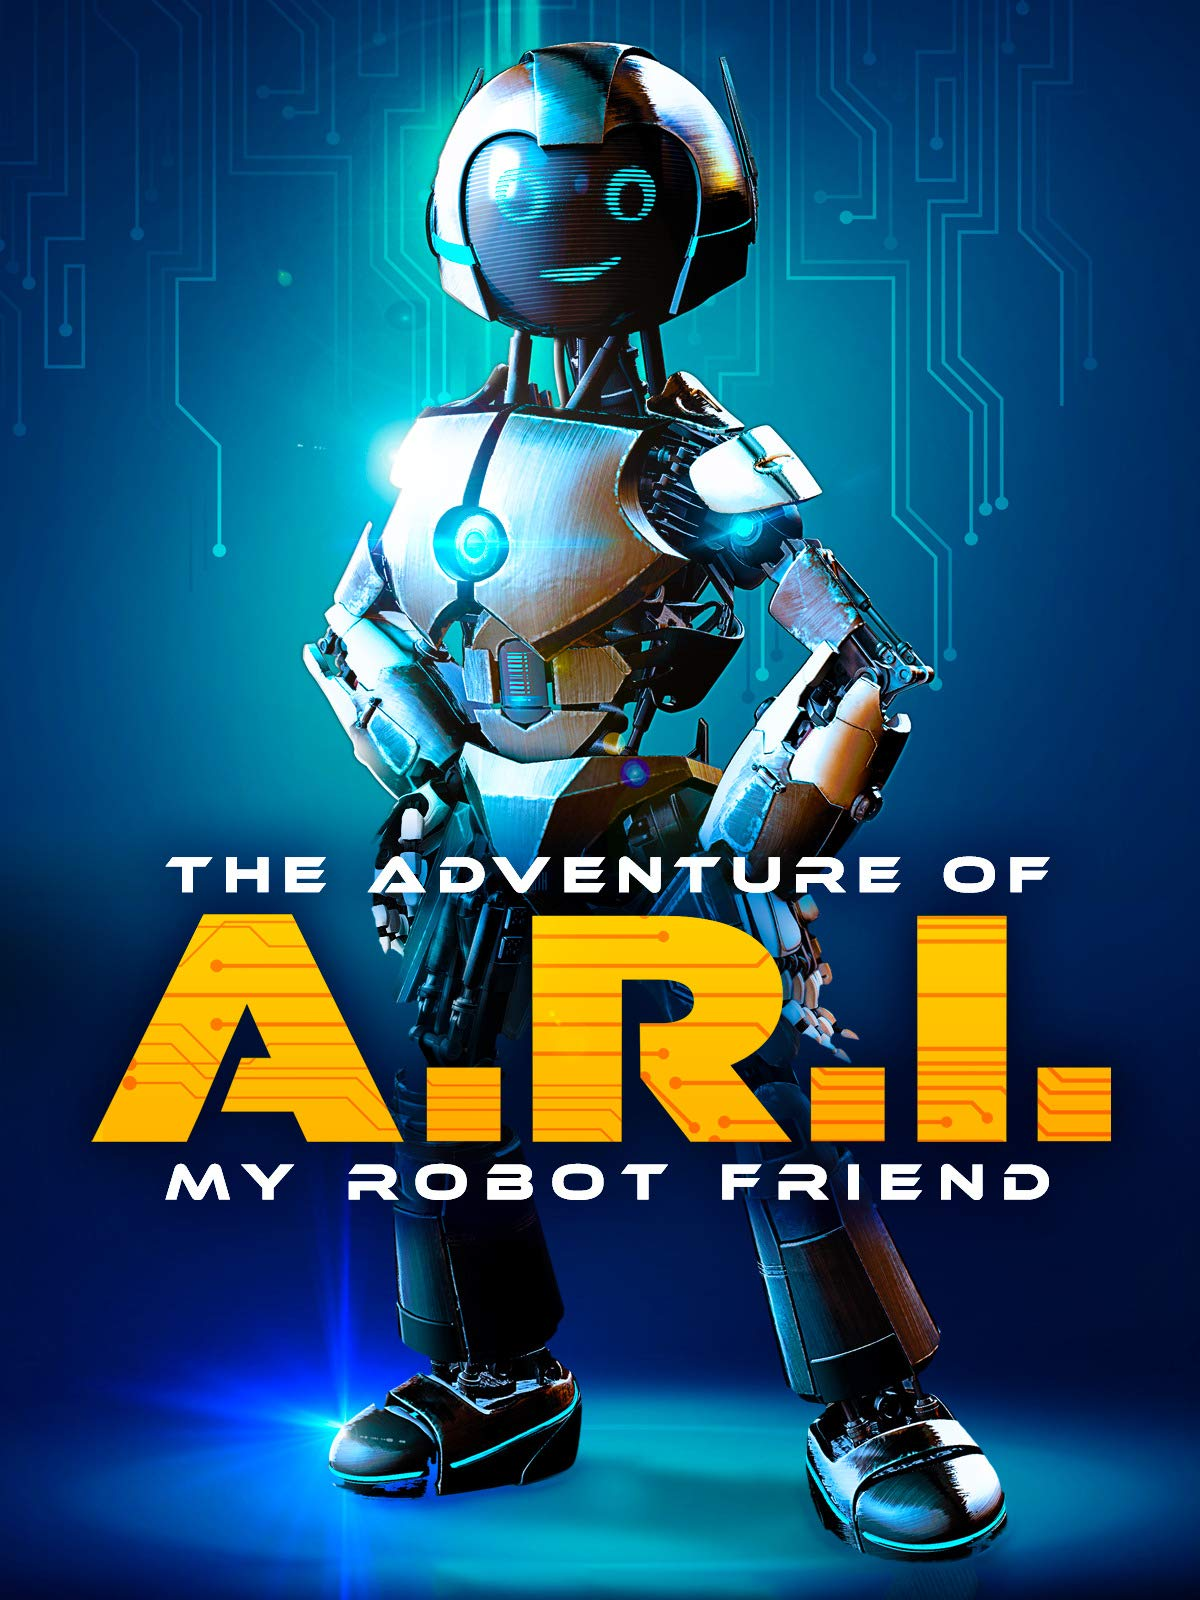 The Adventure Of A.R.I My Robot Friend (2020) English Movie 480p BluRay x264 450MB